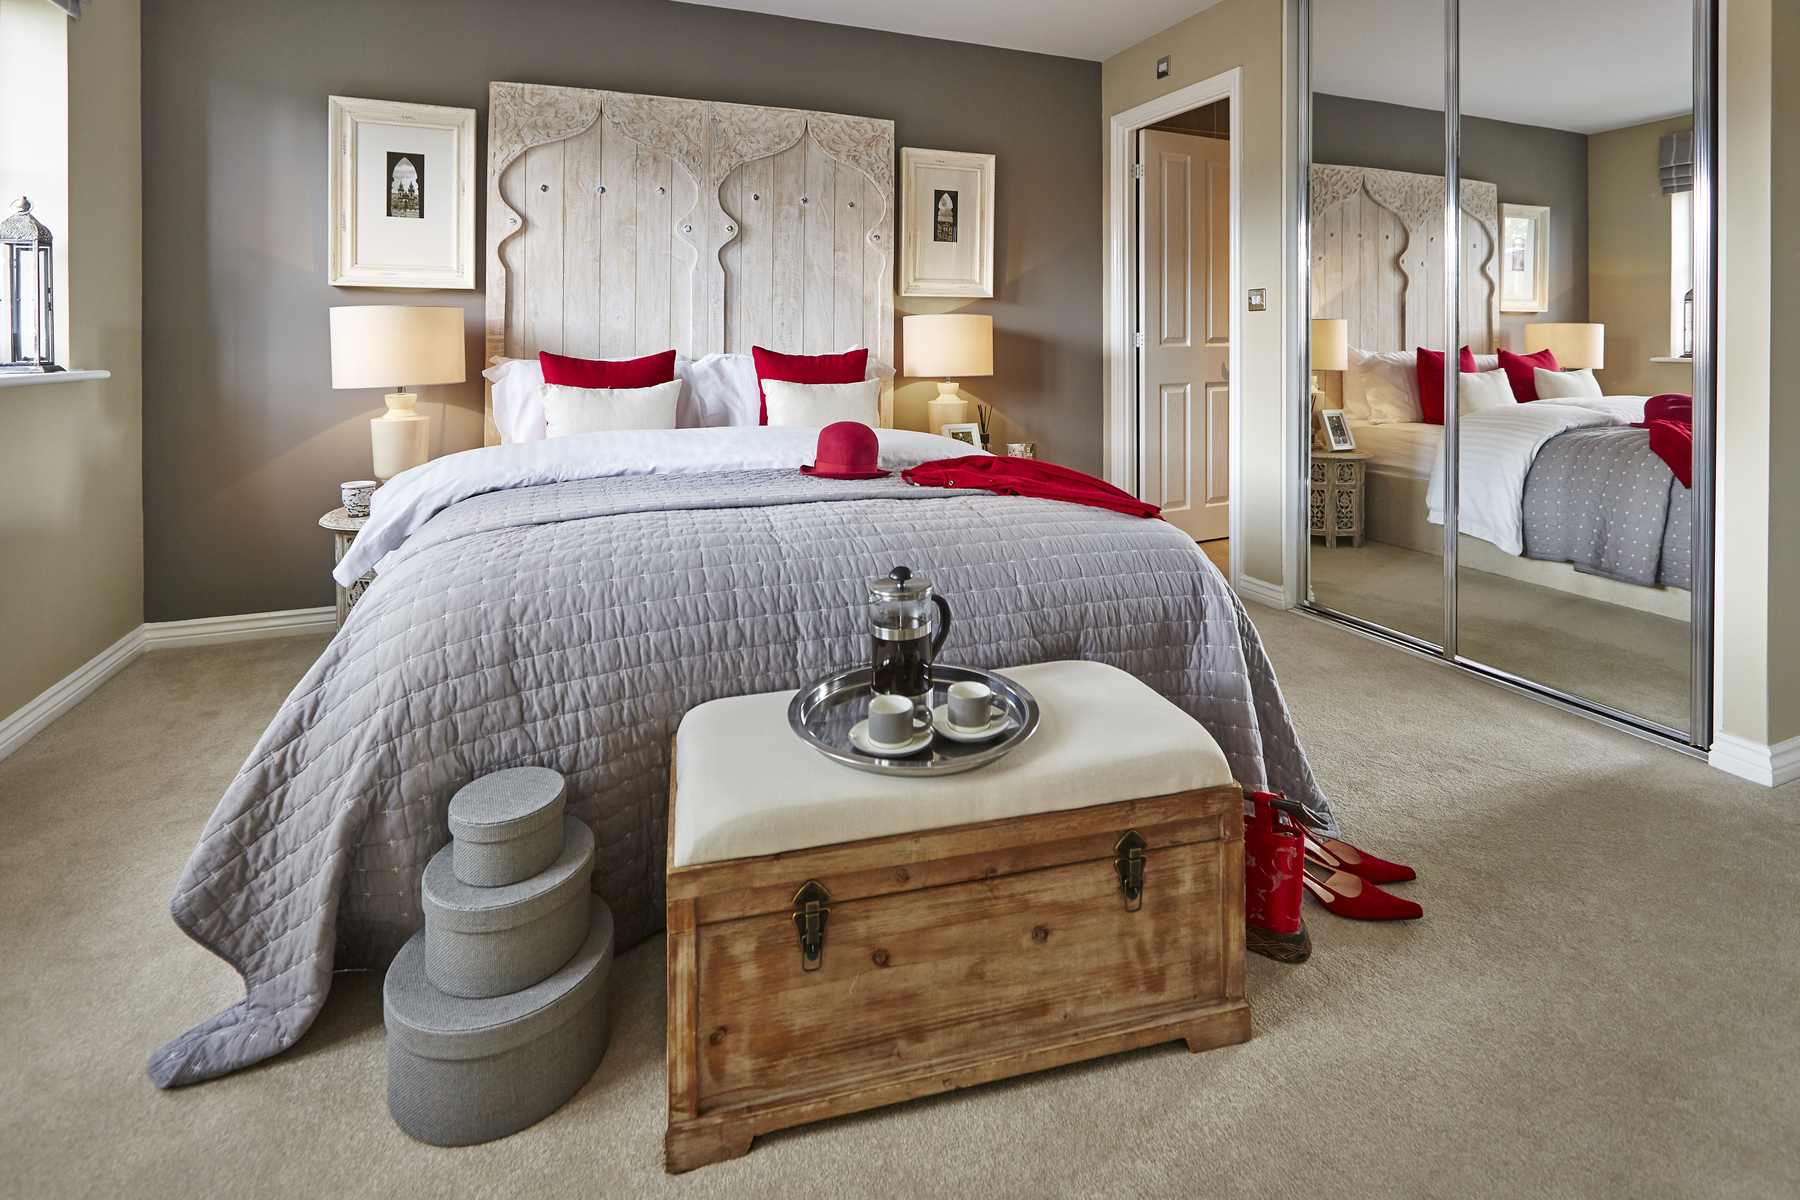 yw_nmids_millers_reach_stone_pd411_haddenham_master_bedroom